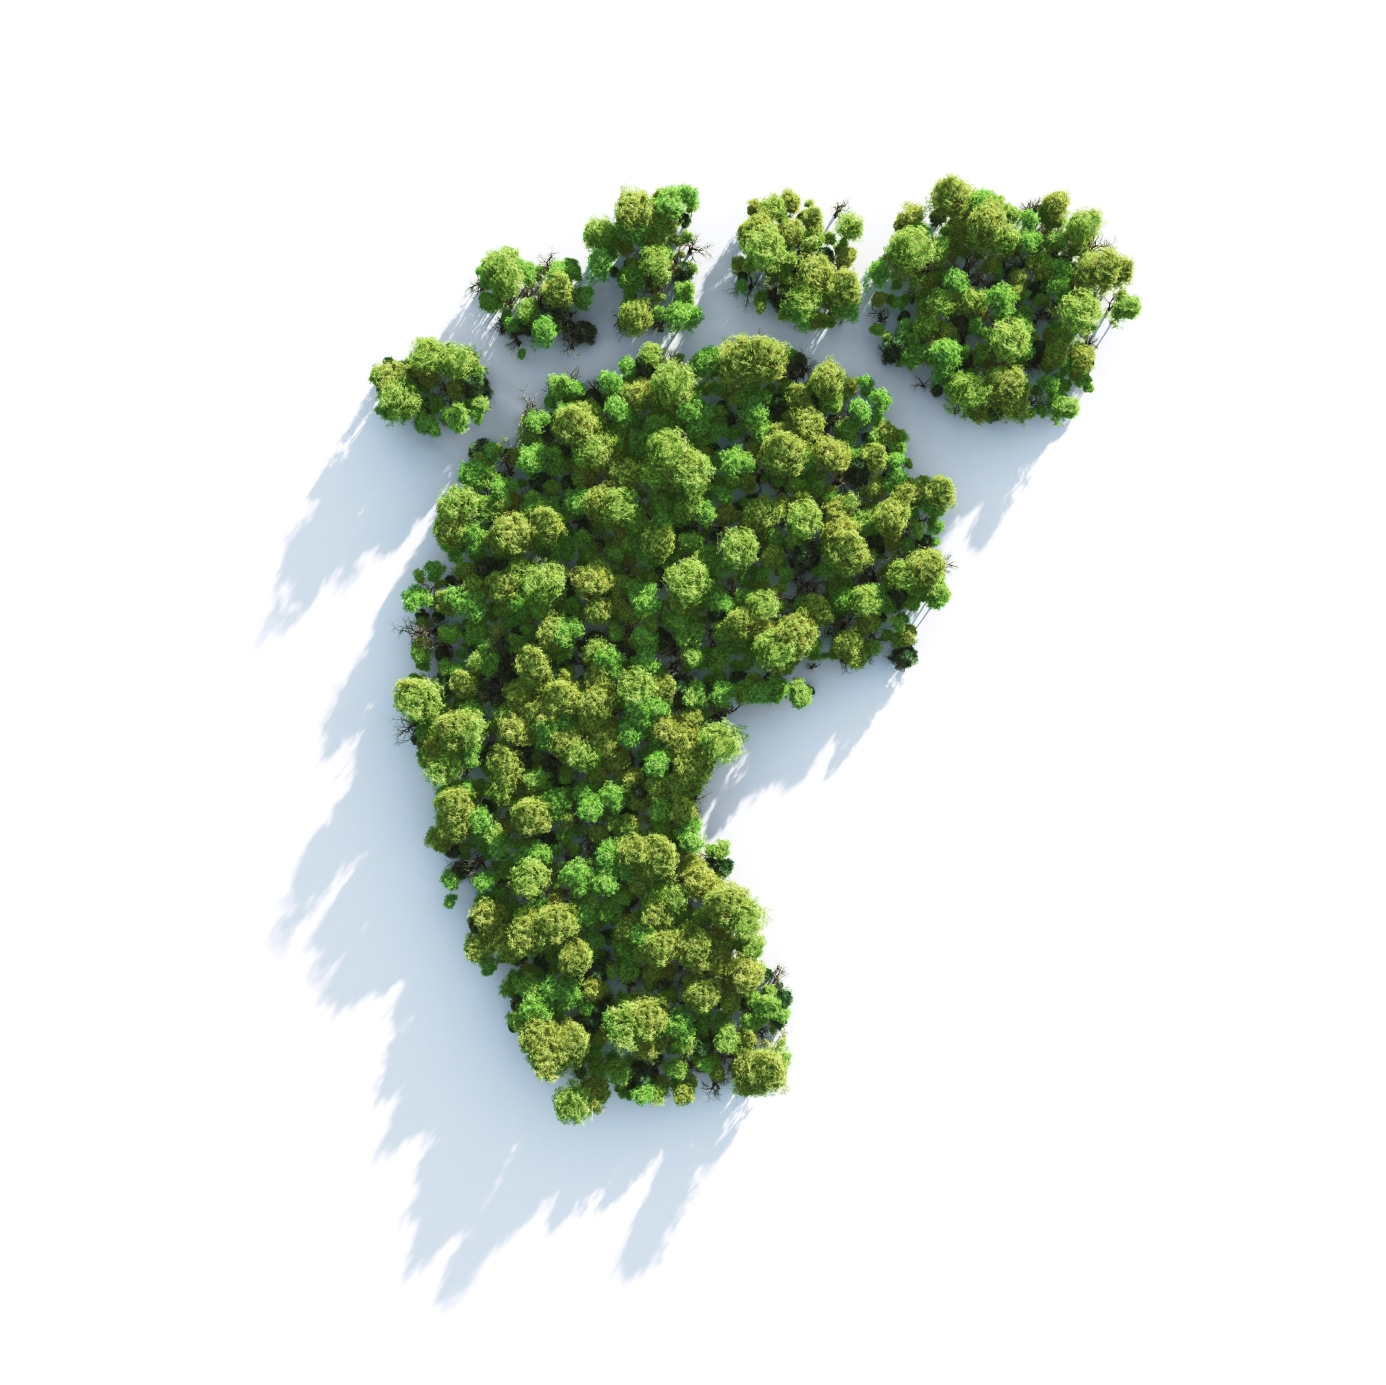 Carbon Footprint | Green Plants Shape of Foot